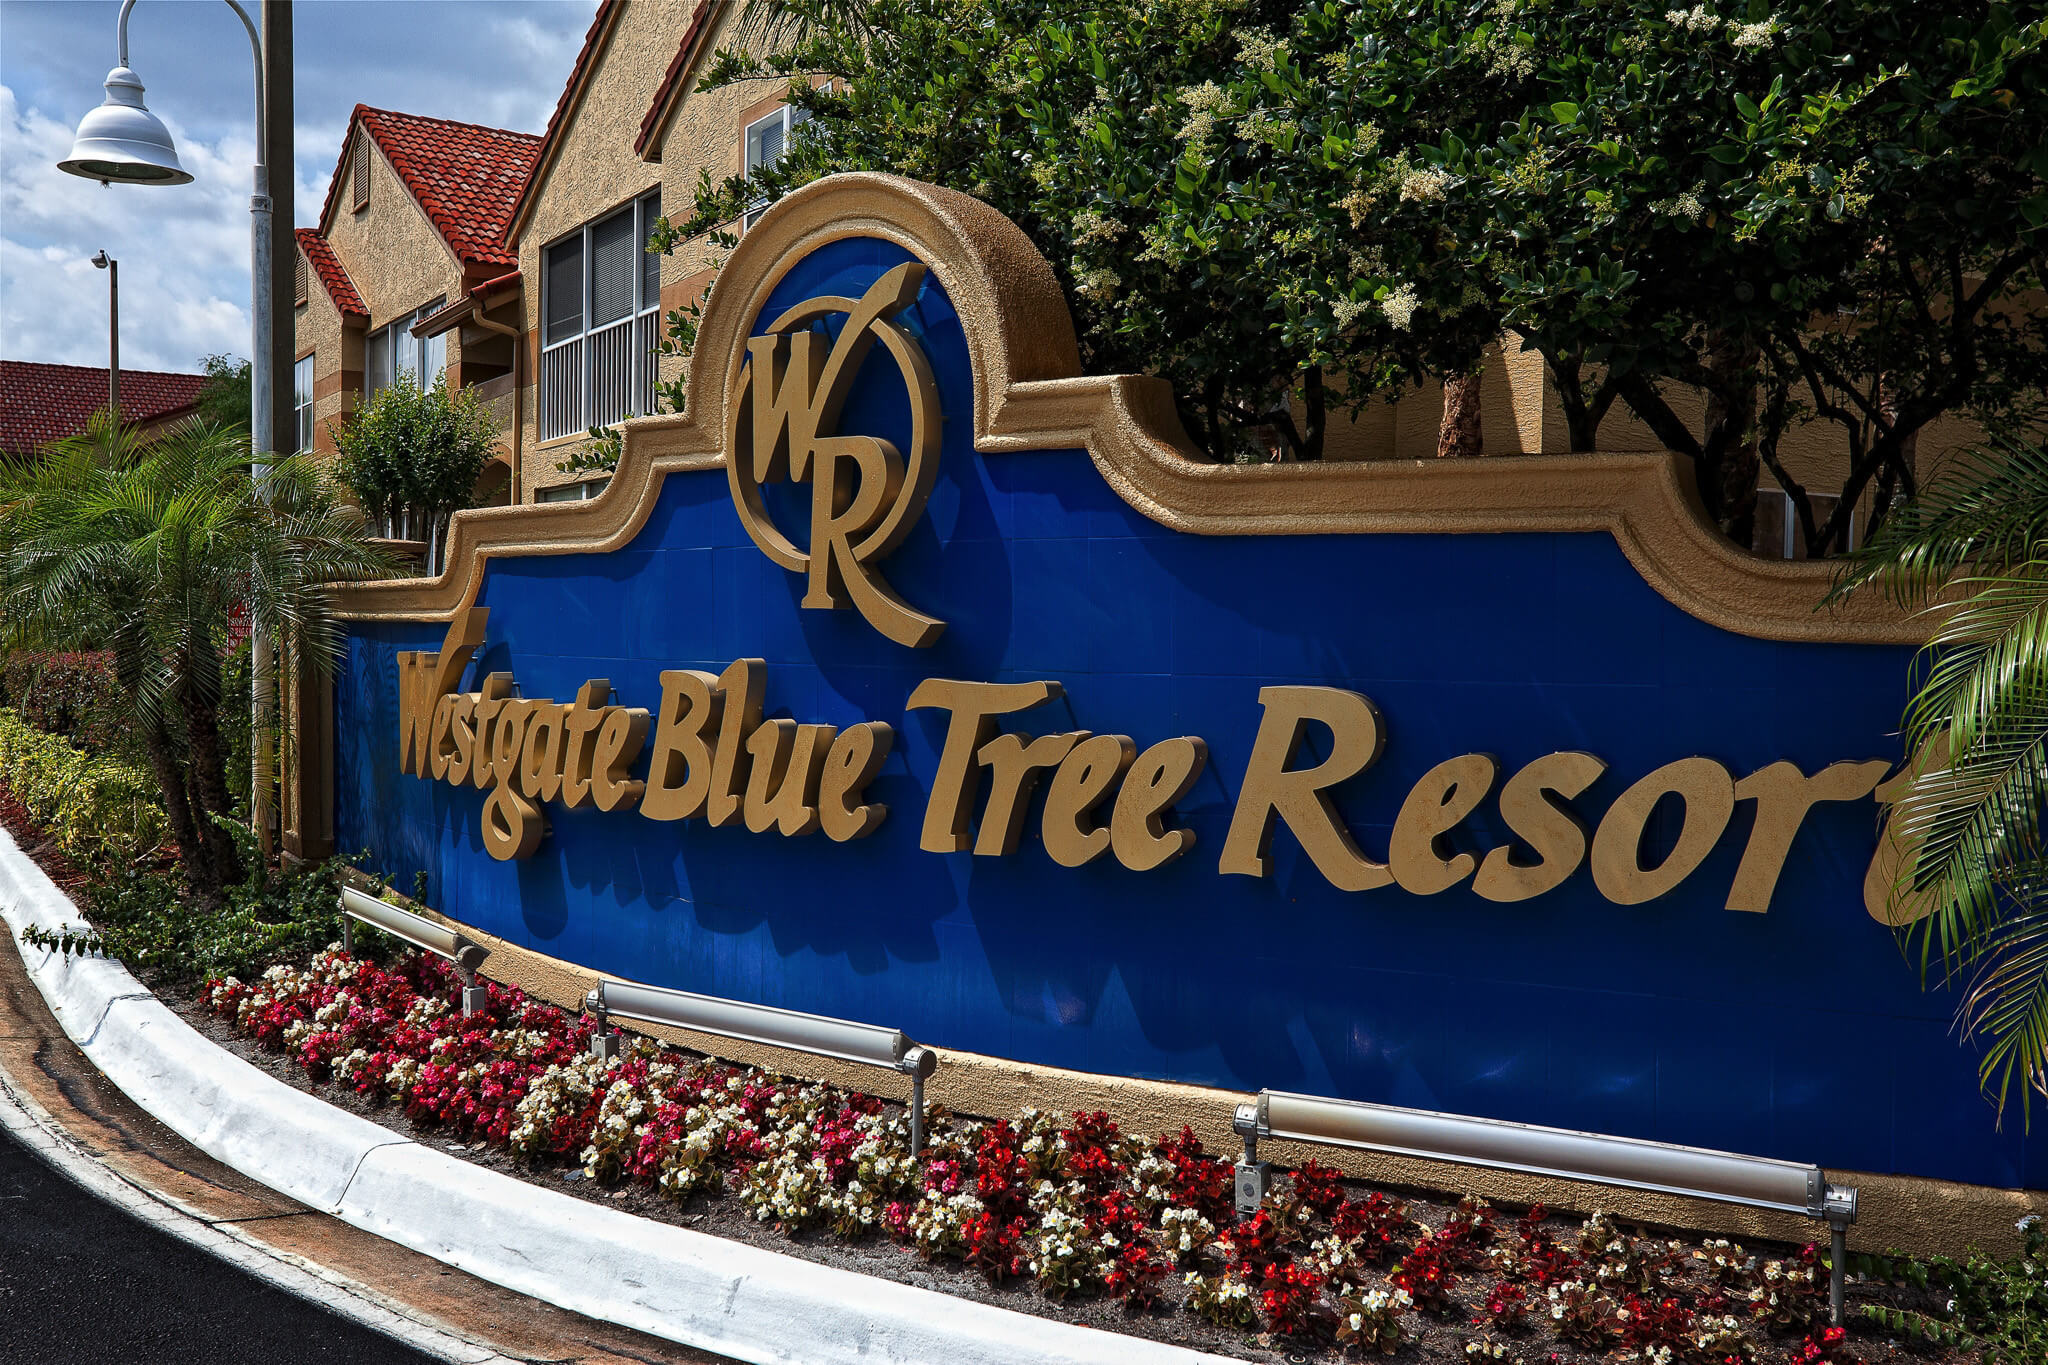 Main Entrance to Resort with Westgate Blue Tree Resort sign | Westgate Blue Tree Resort